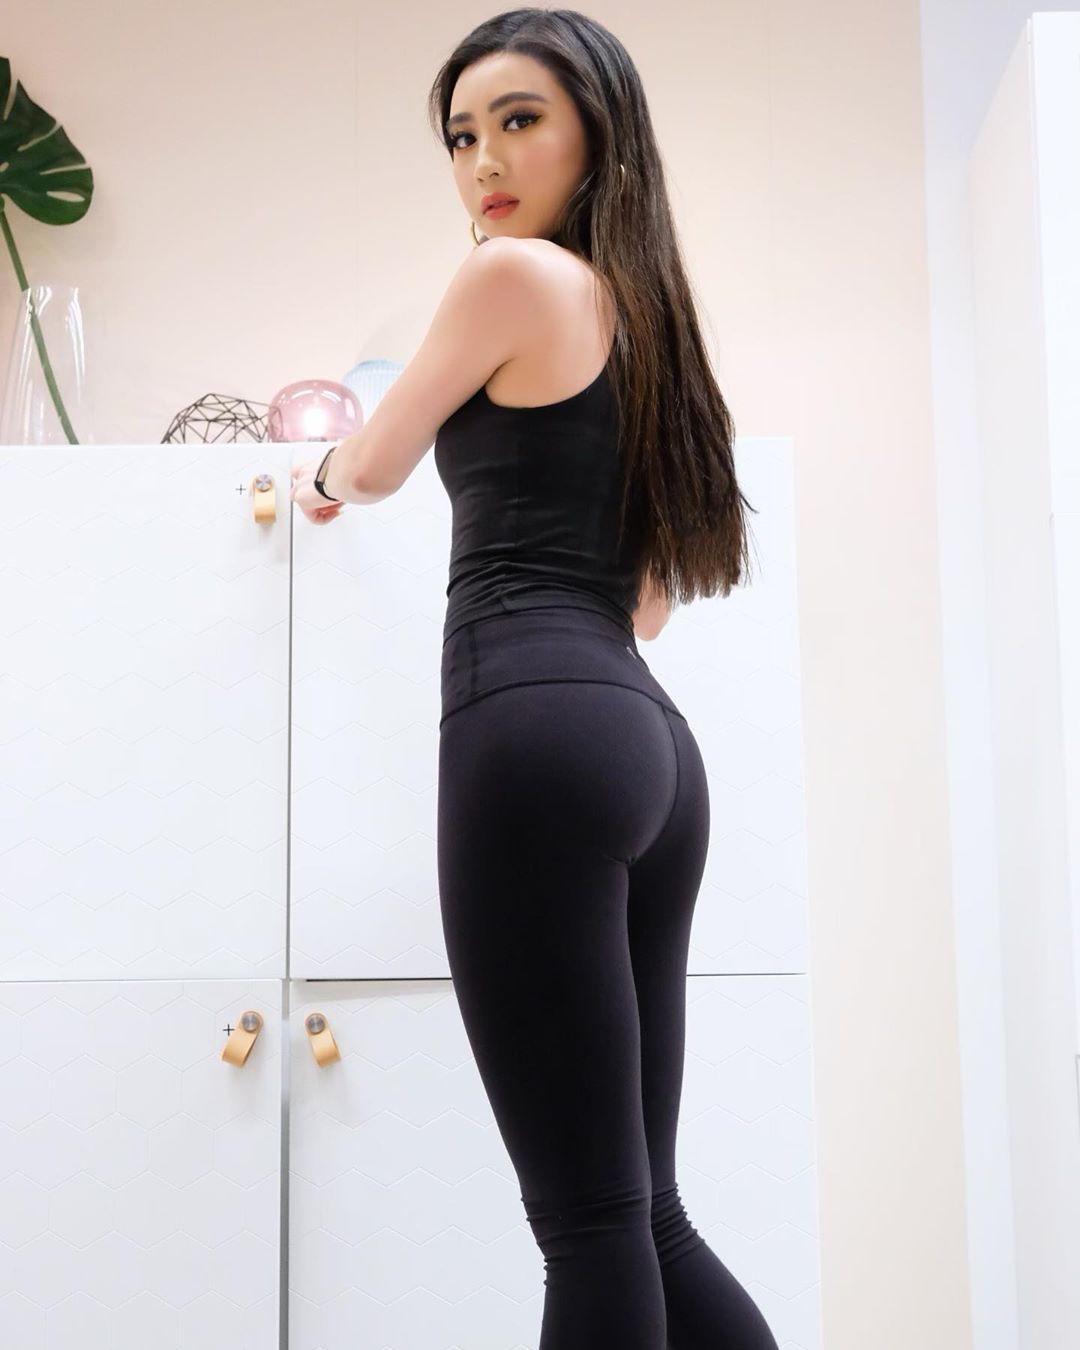 black outfit ideas with sportswear, leggings, tights